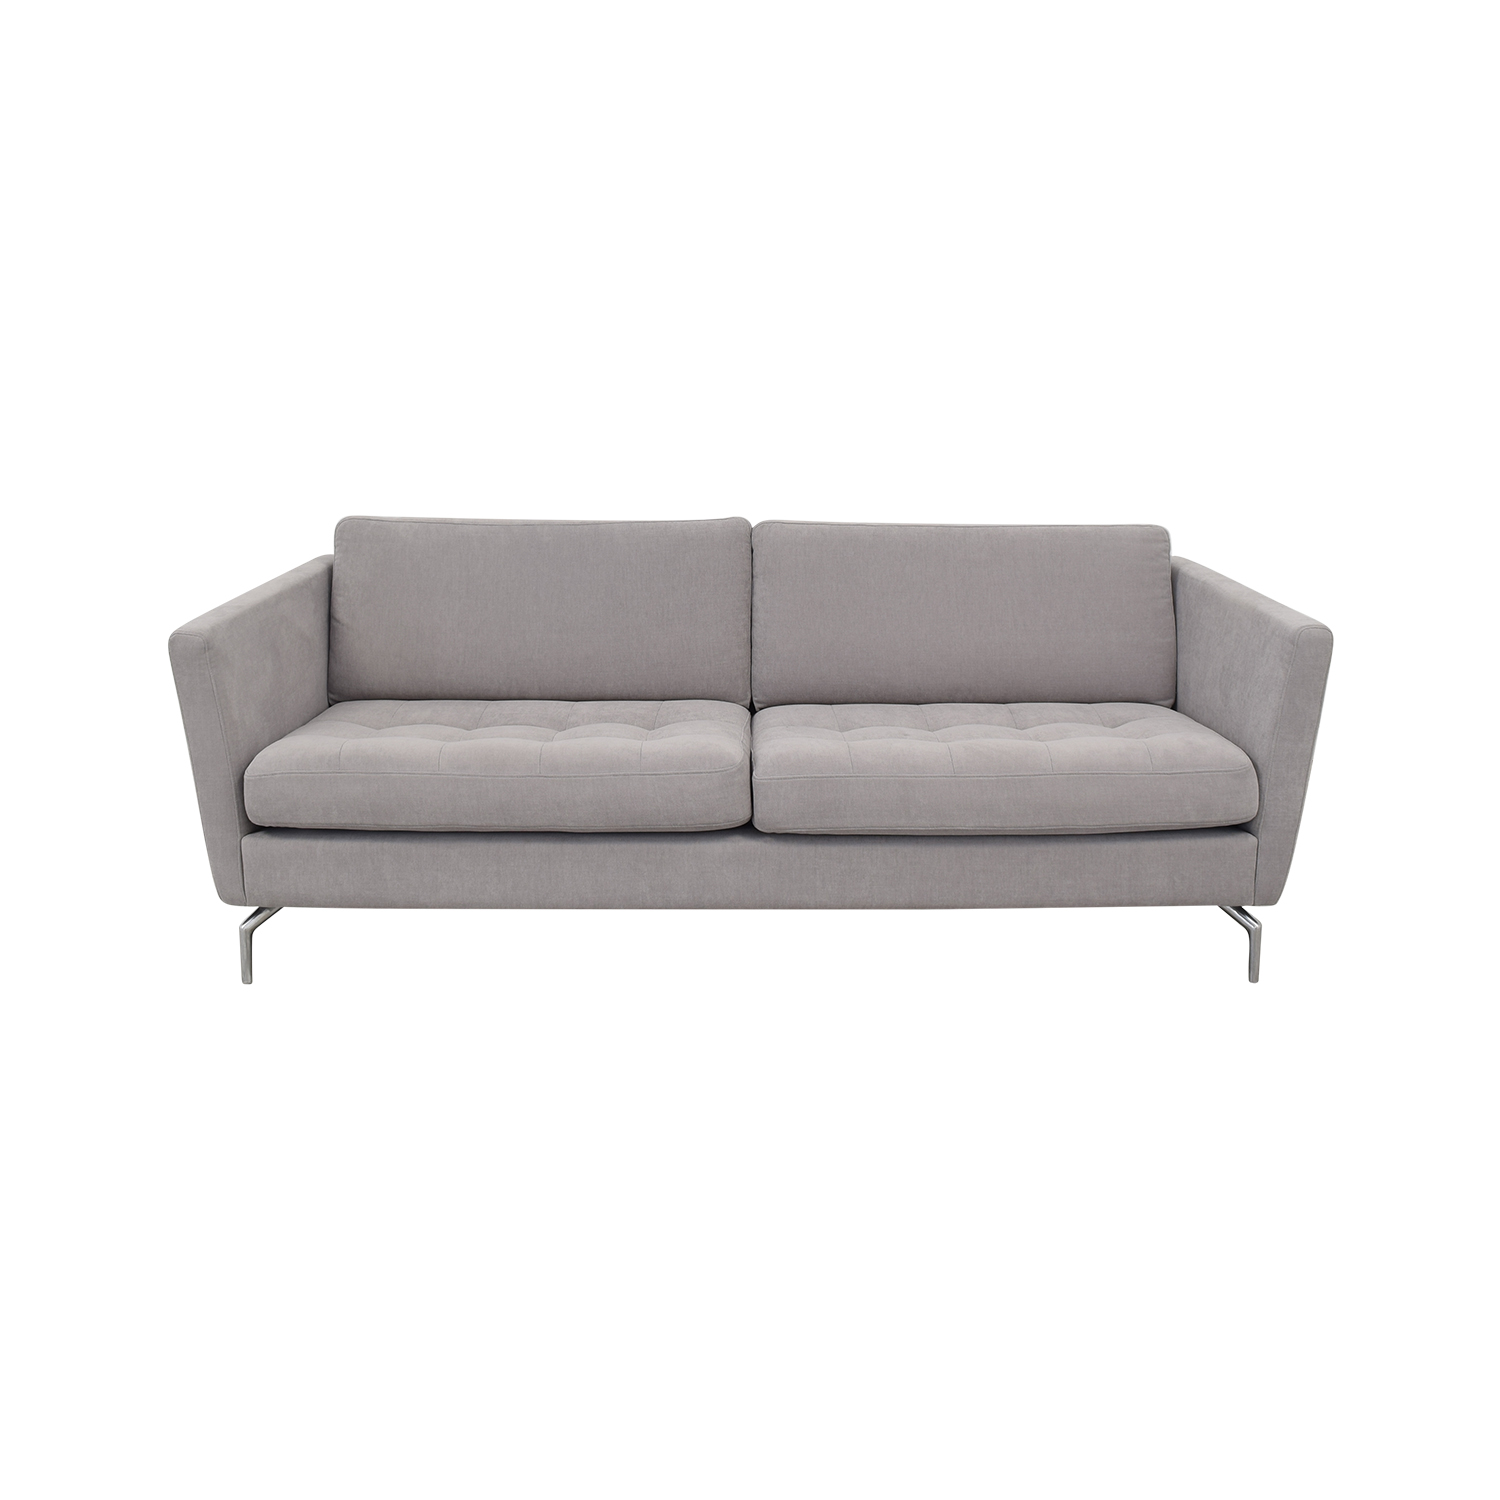 55 Off Boconcept Boconcept Adelaide Chairs With Morgan Seat Cushions Chairs